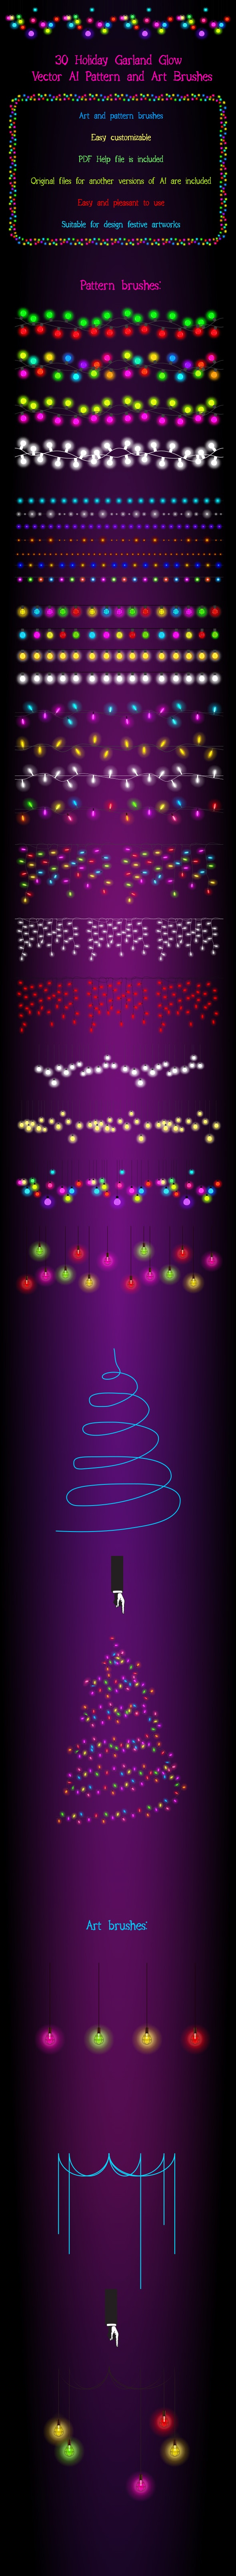 30 Festive Garland Light  Adobe Illustrator Brushes - Magical Shine and Glow on your Artwork - Miscellaneous Brushes